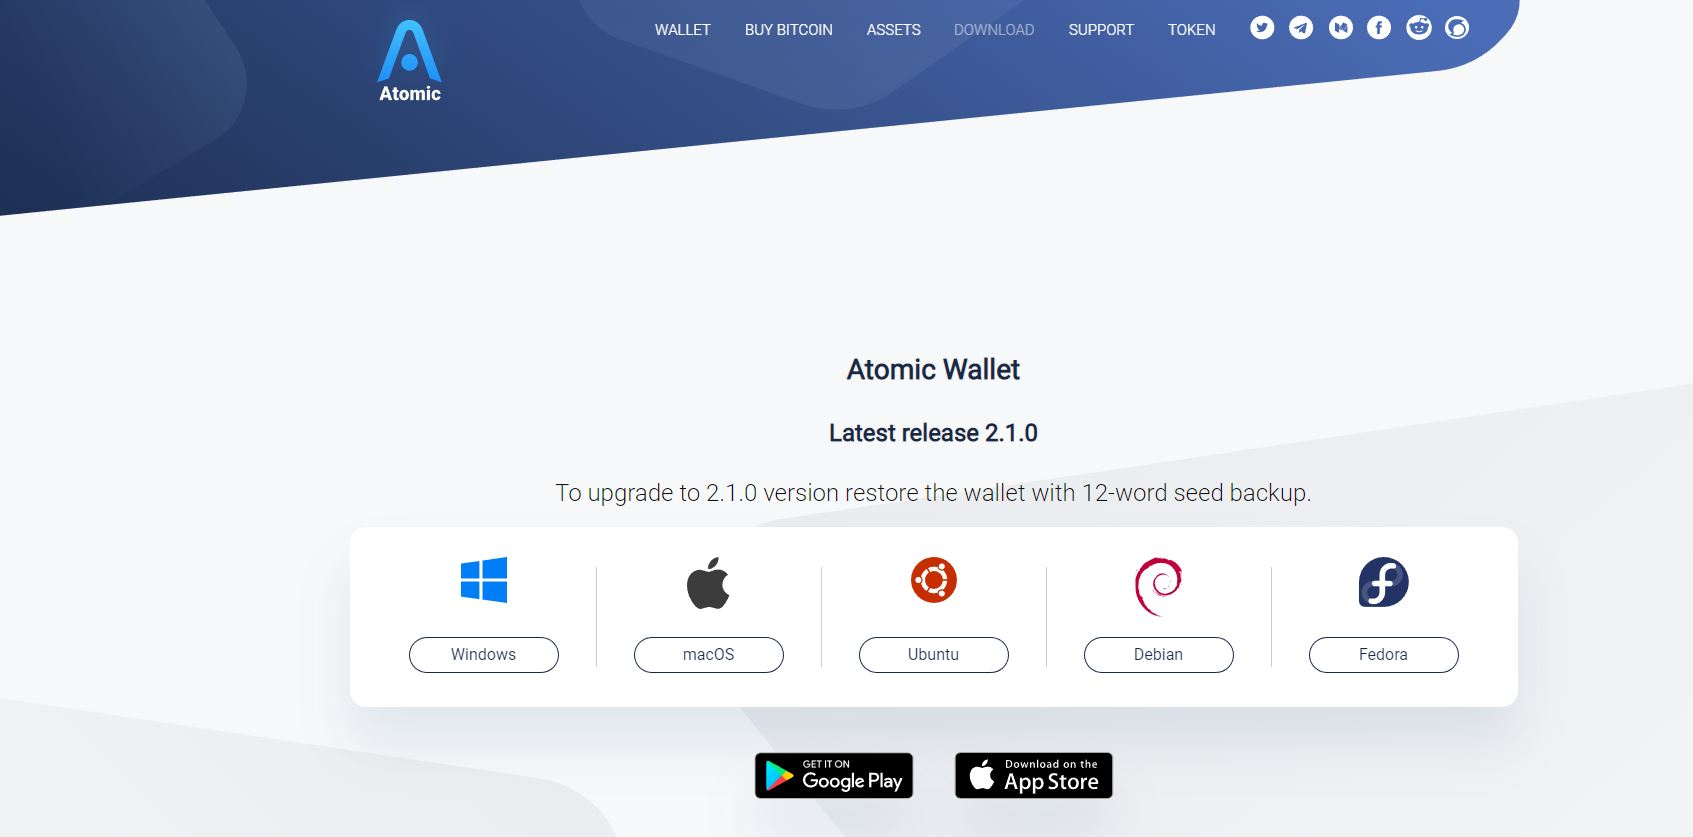 Universal Cryptocurrency Wallet with Decentralized Atomic